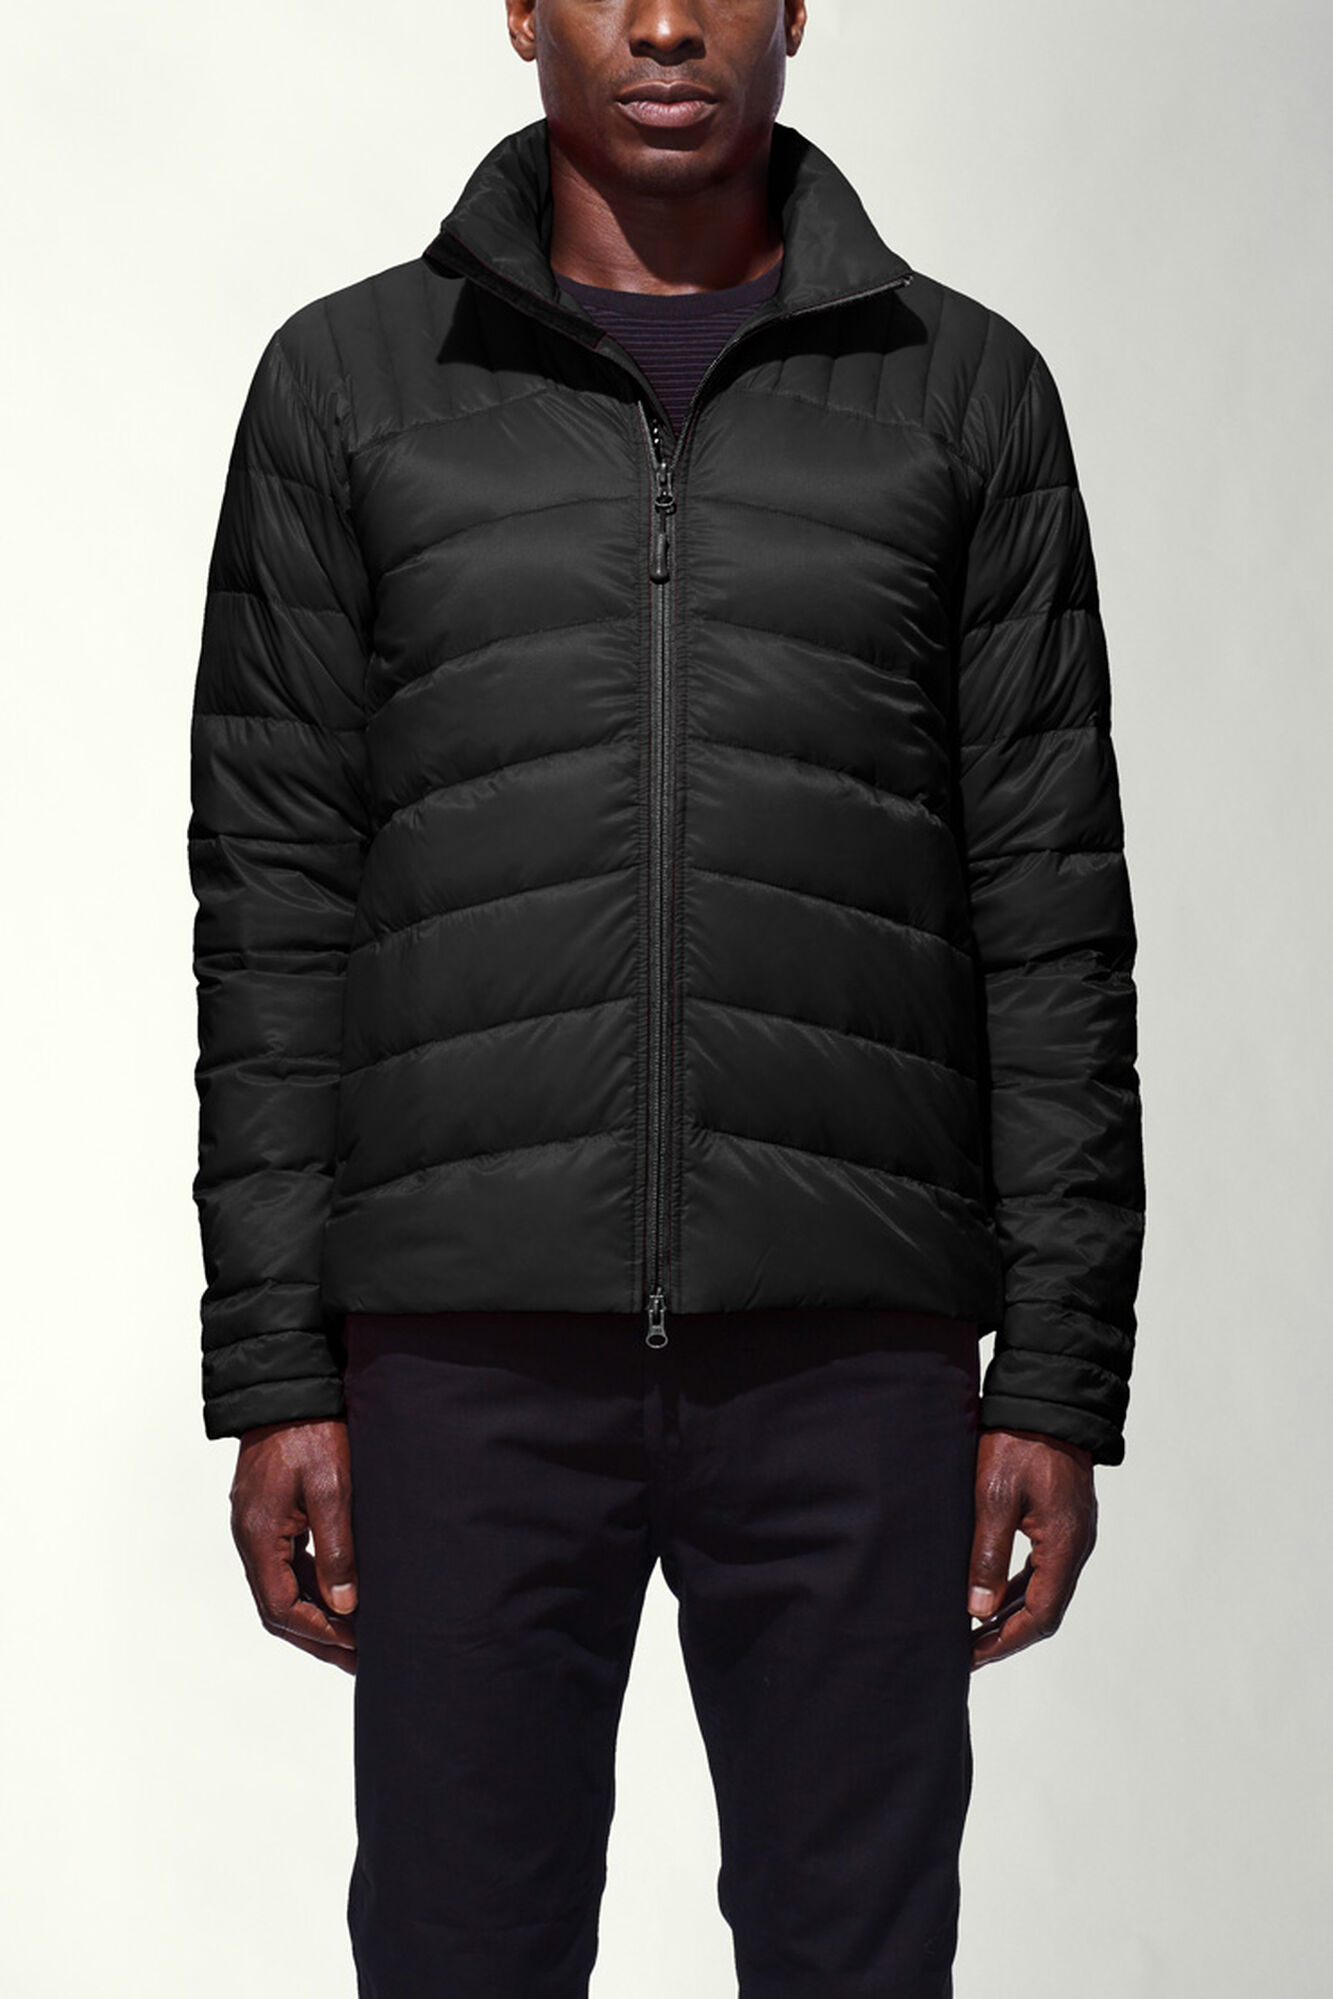 Canada Goose toronto outlet price - Men's Hybridge Lite Jacket | Canada Goose?